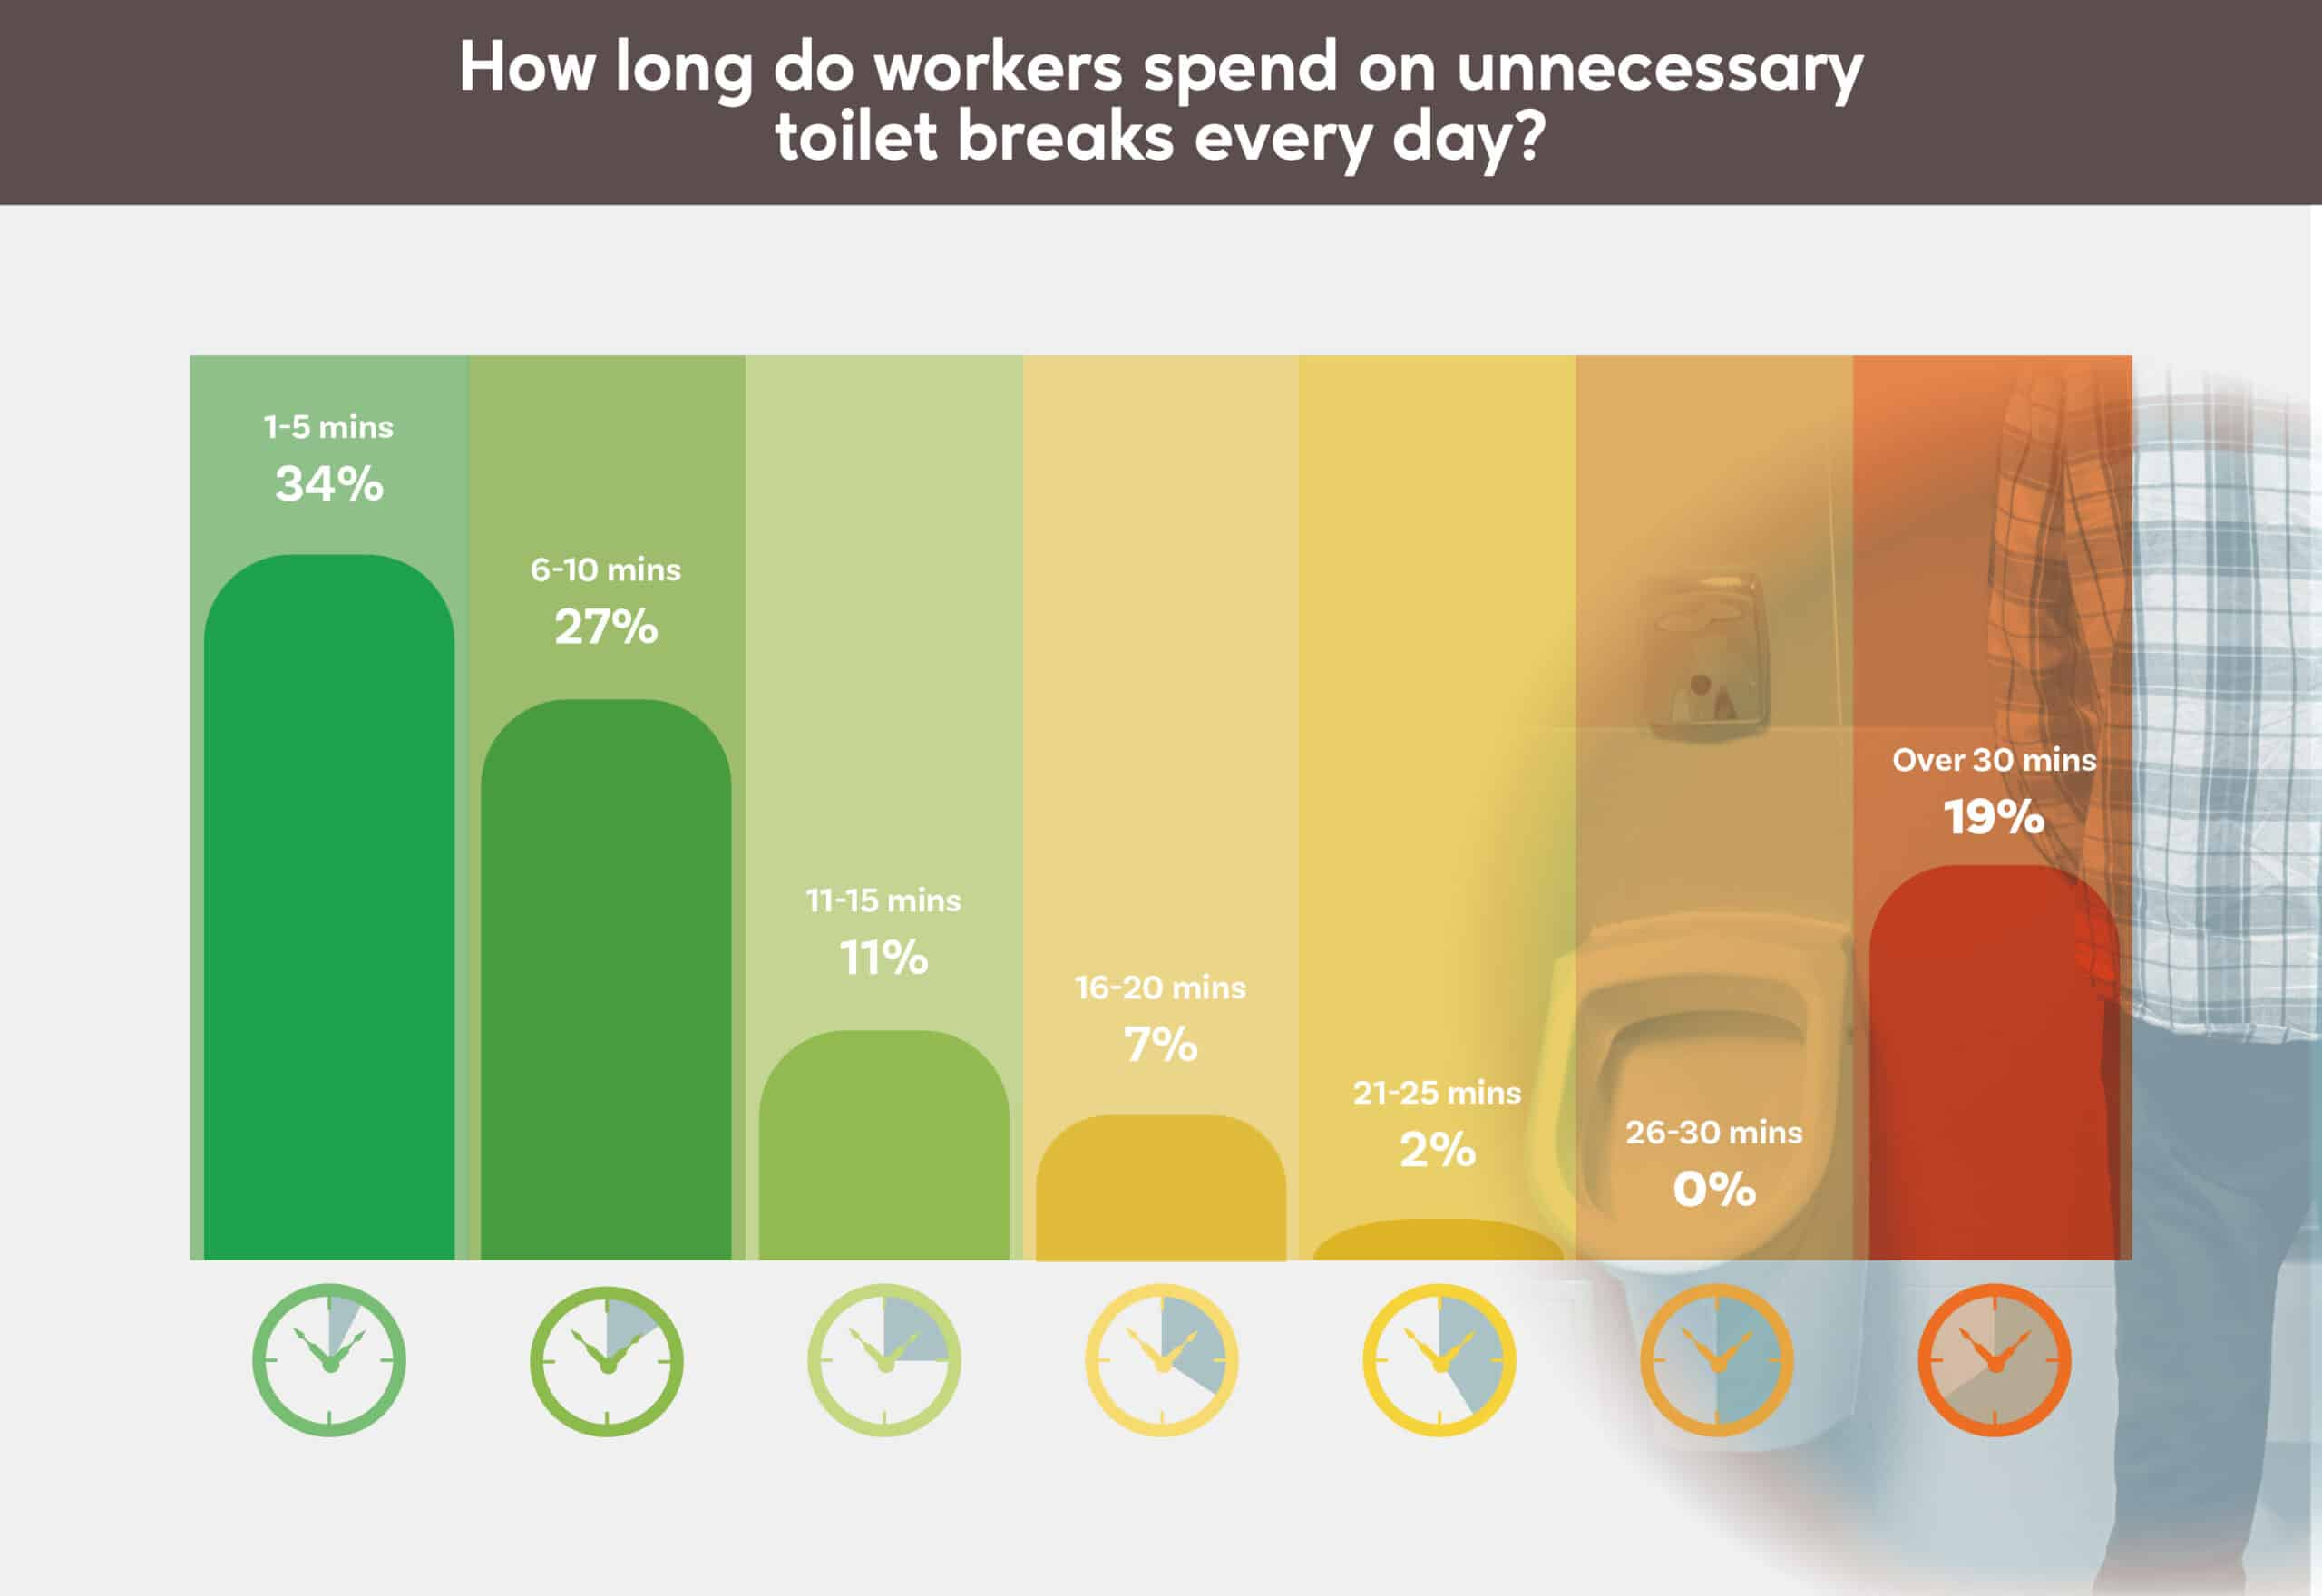 19% of workers spend over 30 minutes per day on the toilet